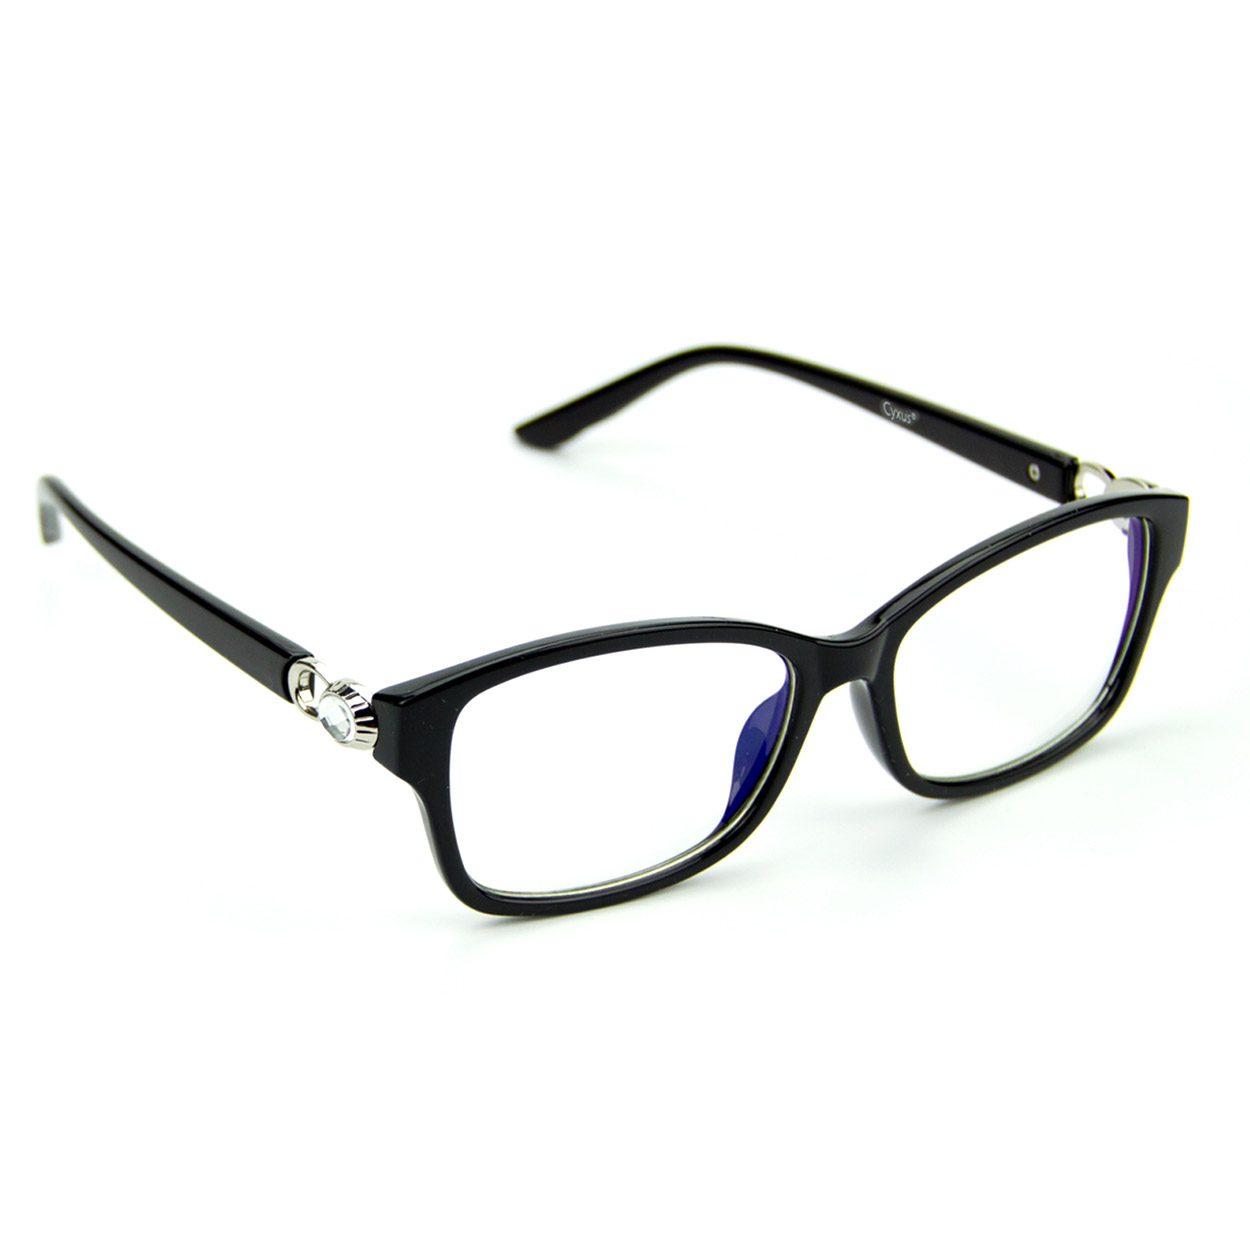 Blue Light Blocking Round Glasses Anti-Fatigue Non prescription Computer Glasses Prevent Headaches Gamer Glasses